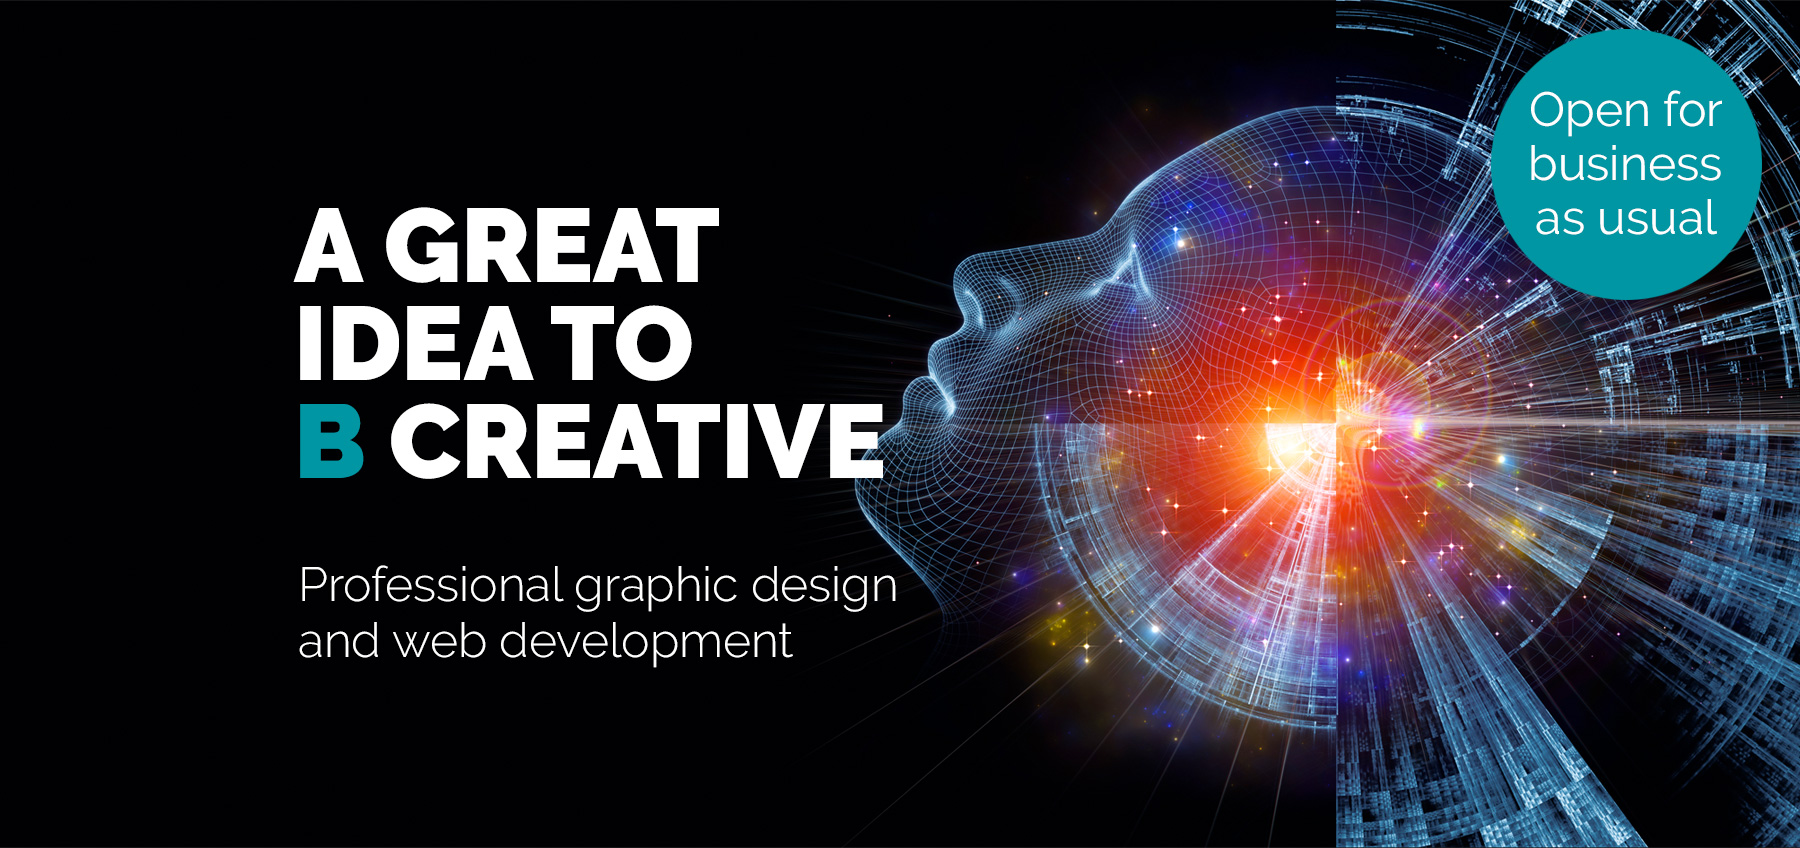 Graphic design and web development services in Sussex and Surrey